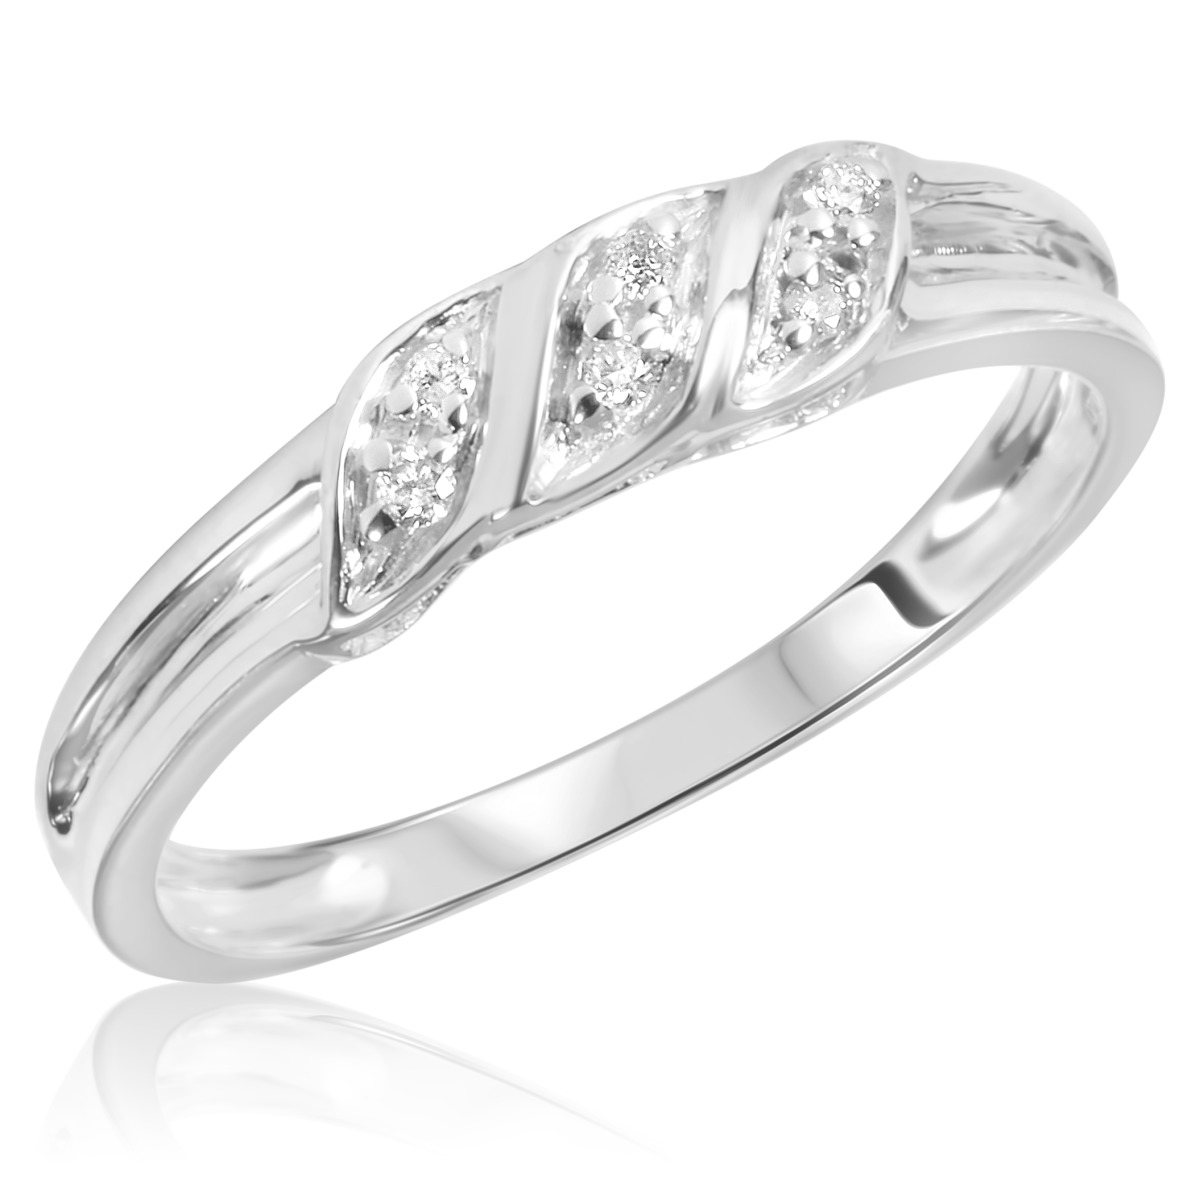 1/15 Carat T.W. Diamond Women's Wedding Ring 14K White ...